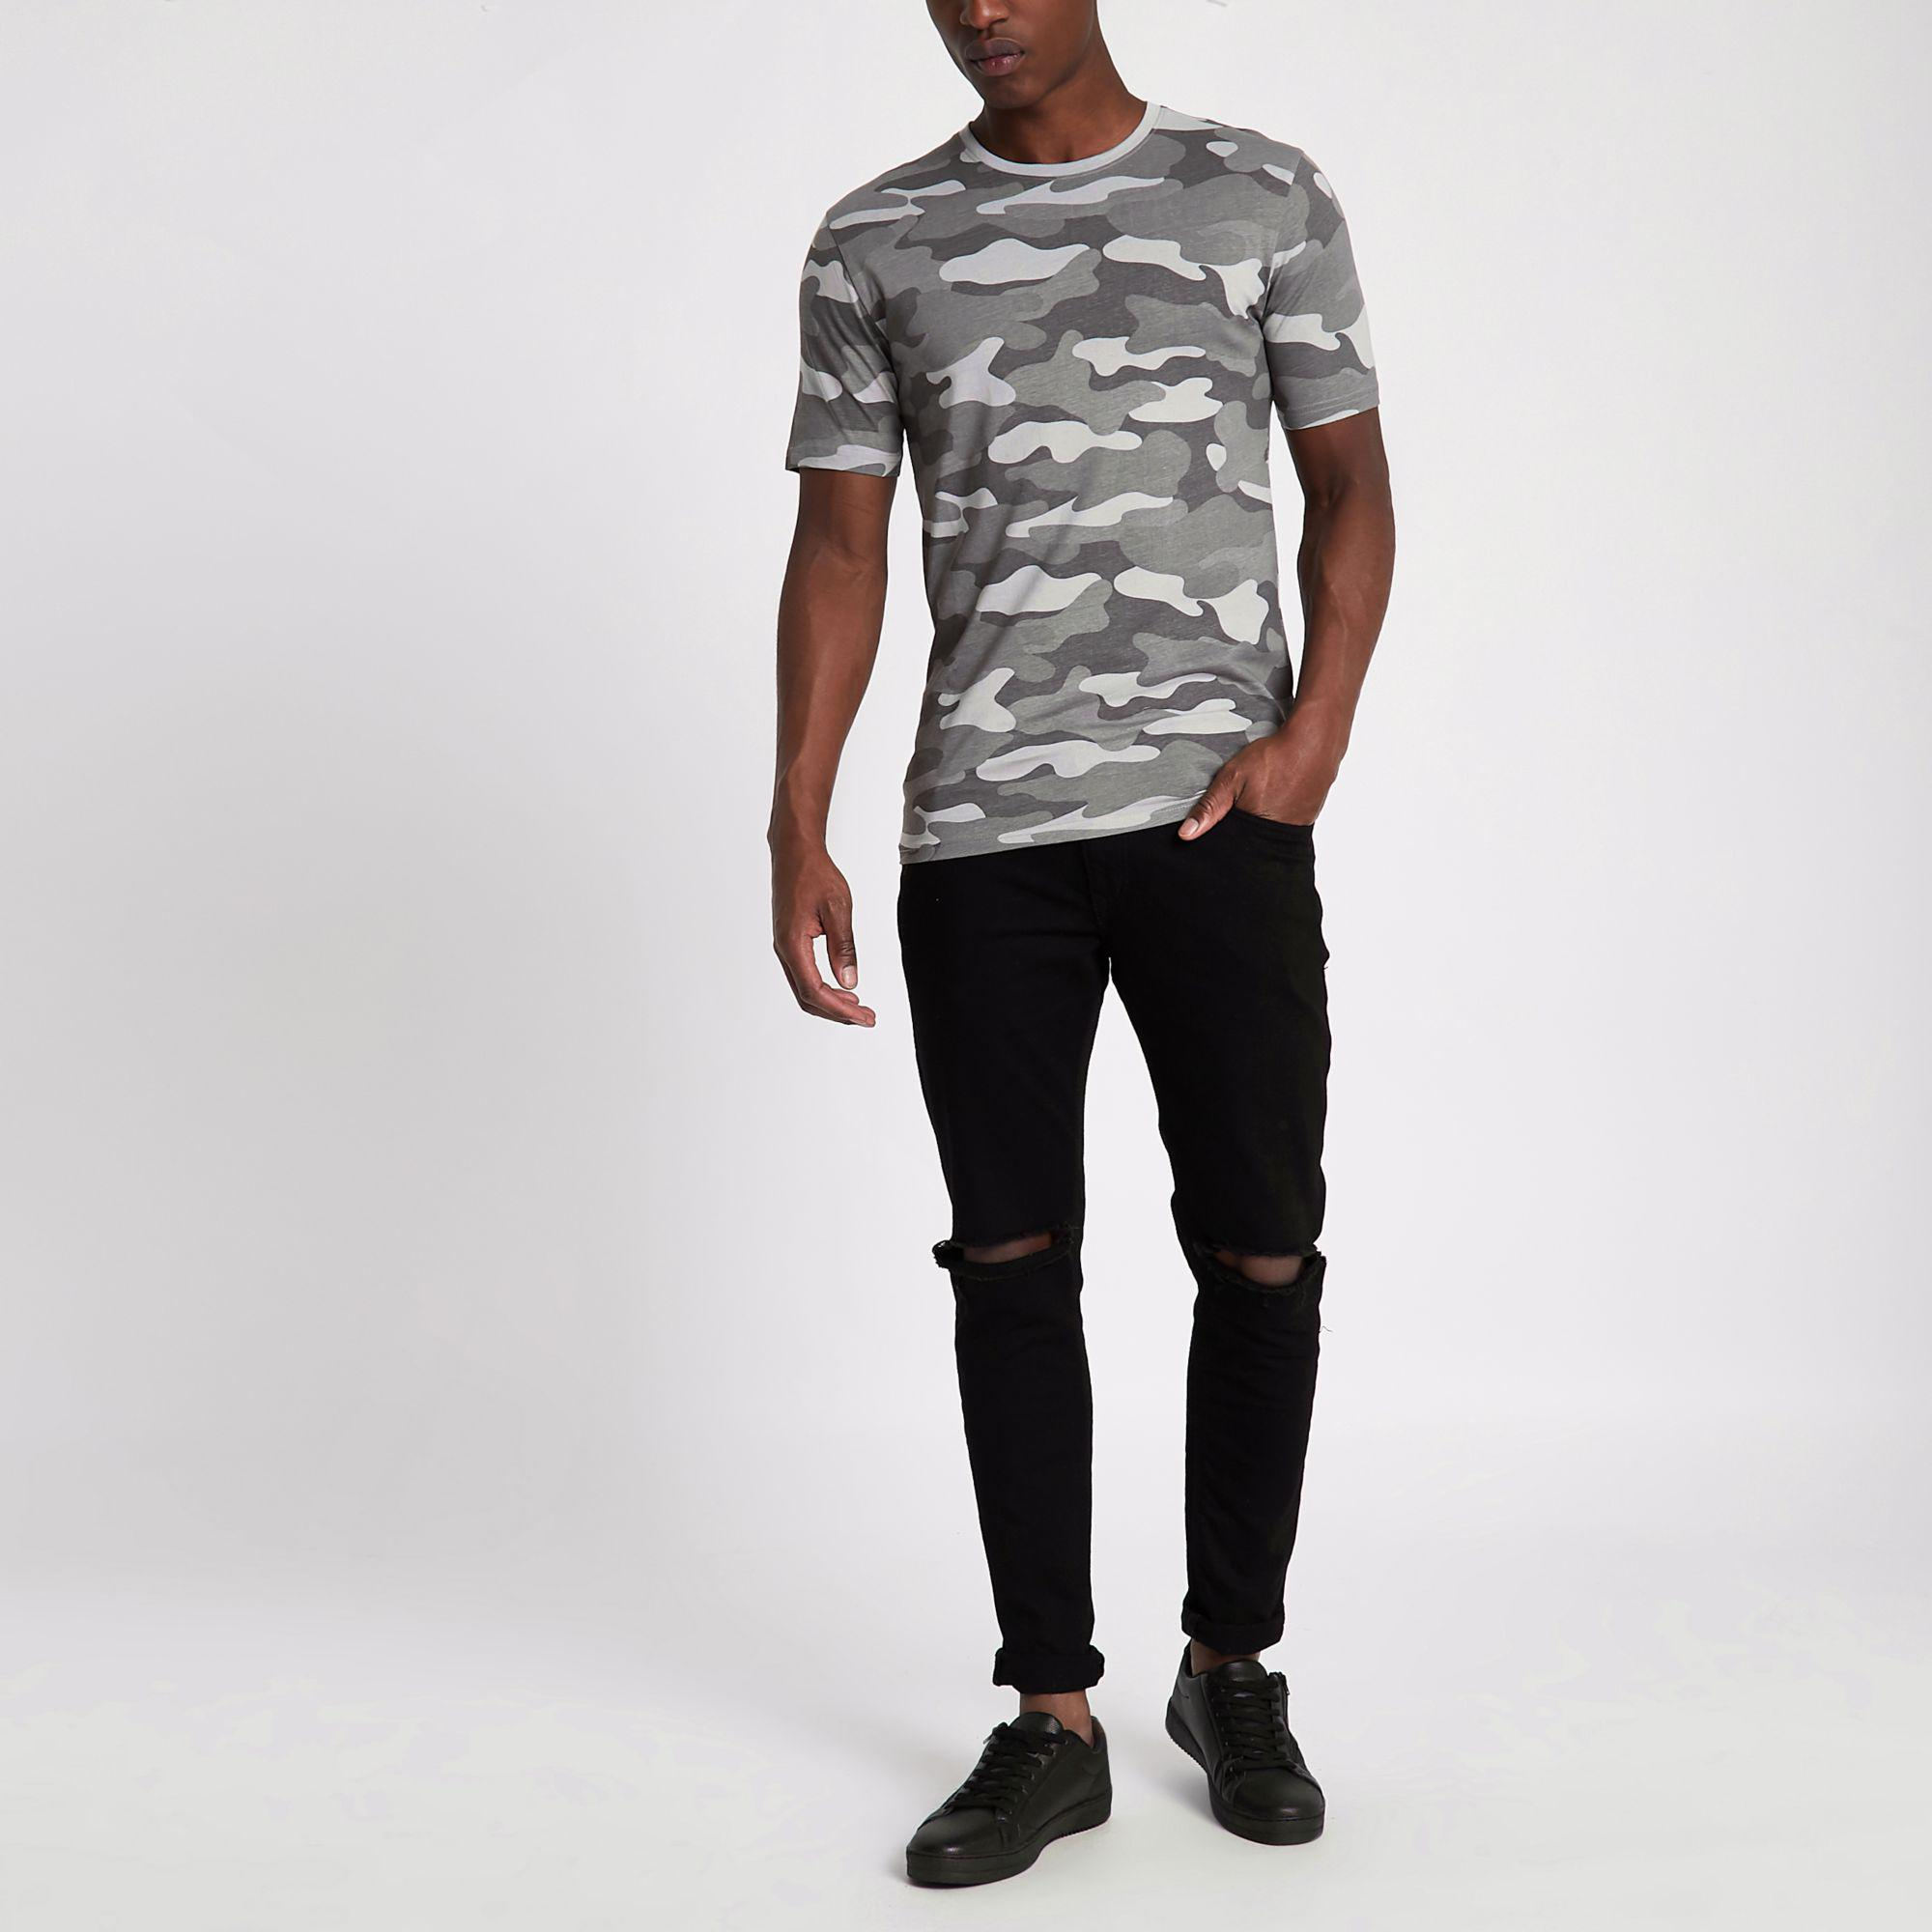 0df8fd8de05f river-island-Grey-Only-And-Sons-Grey-Camo-Print-T-shirt.jpeg